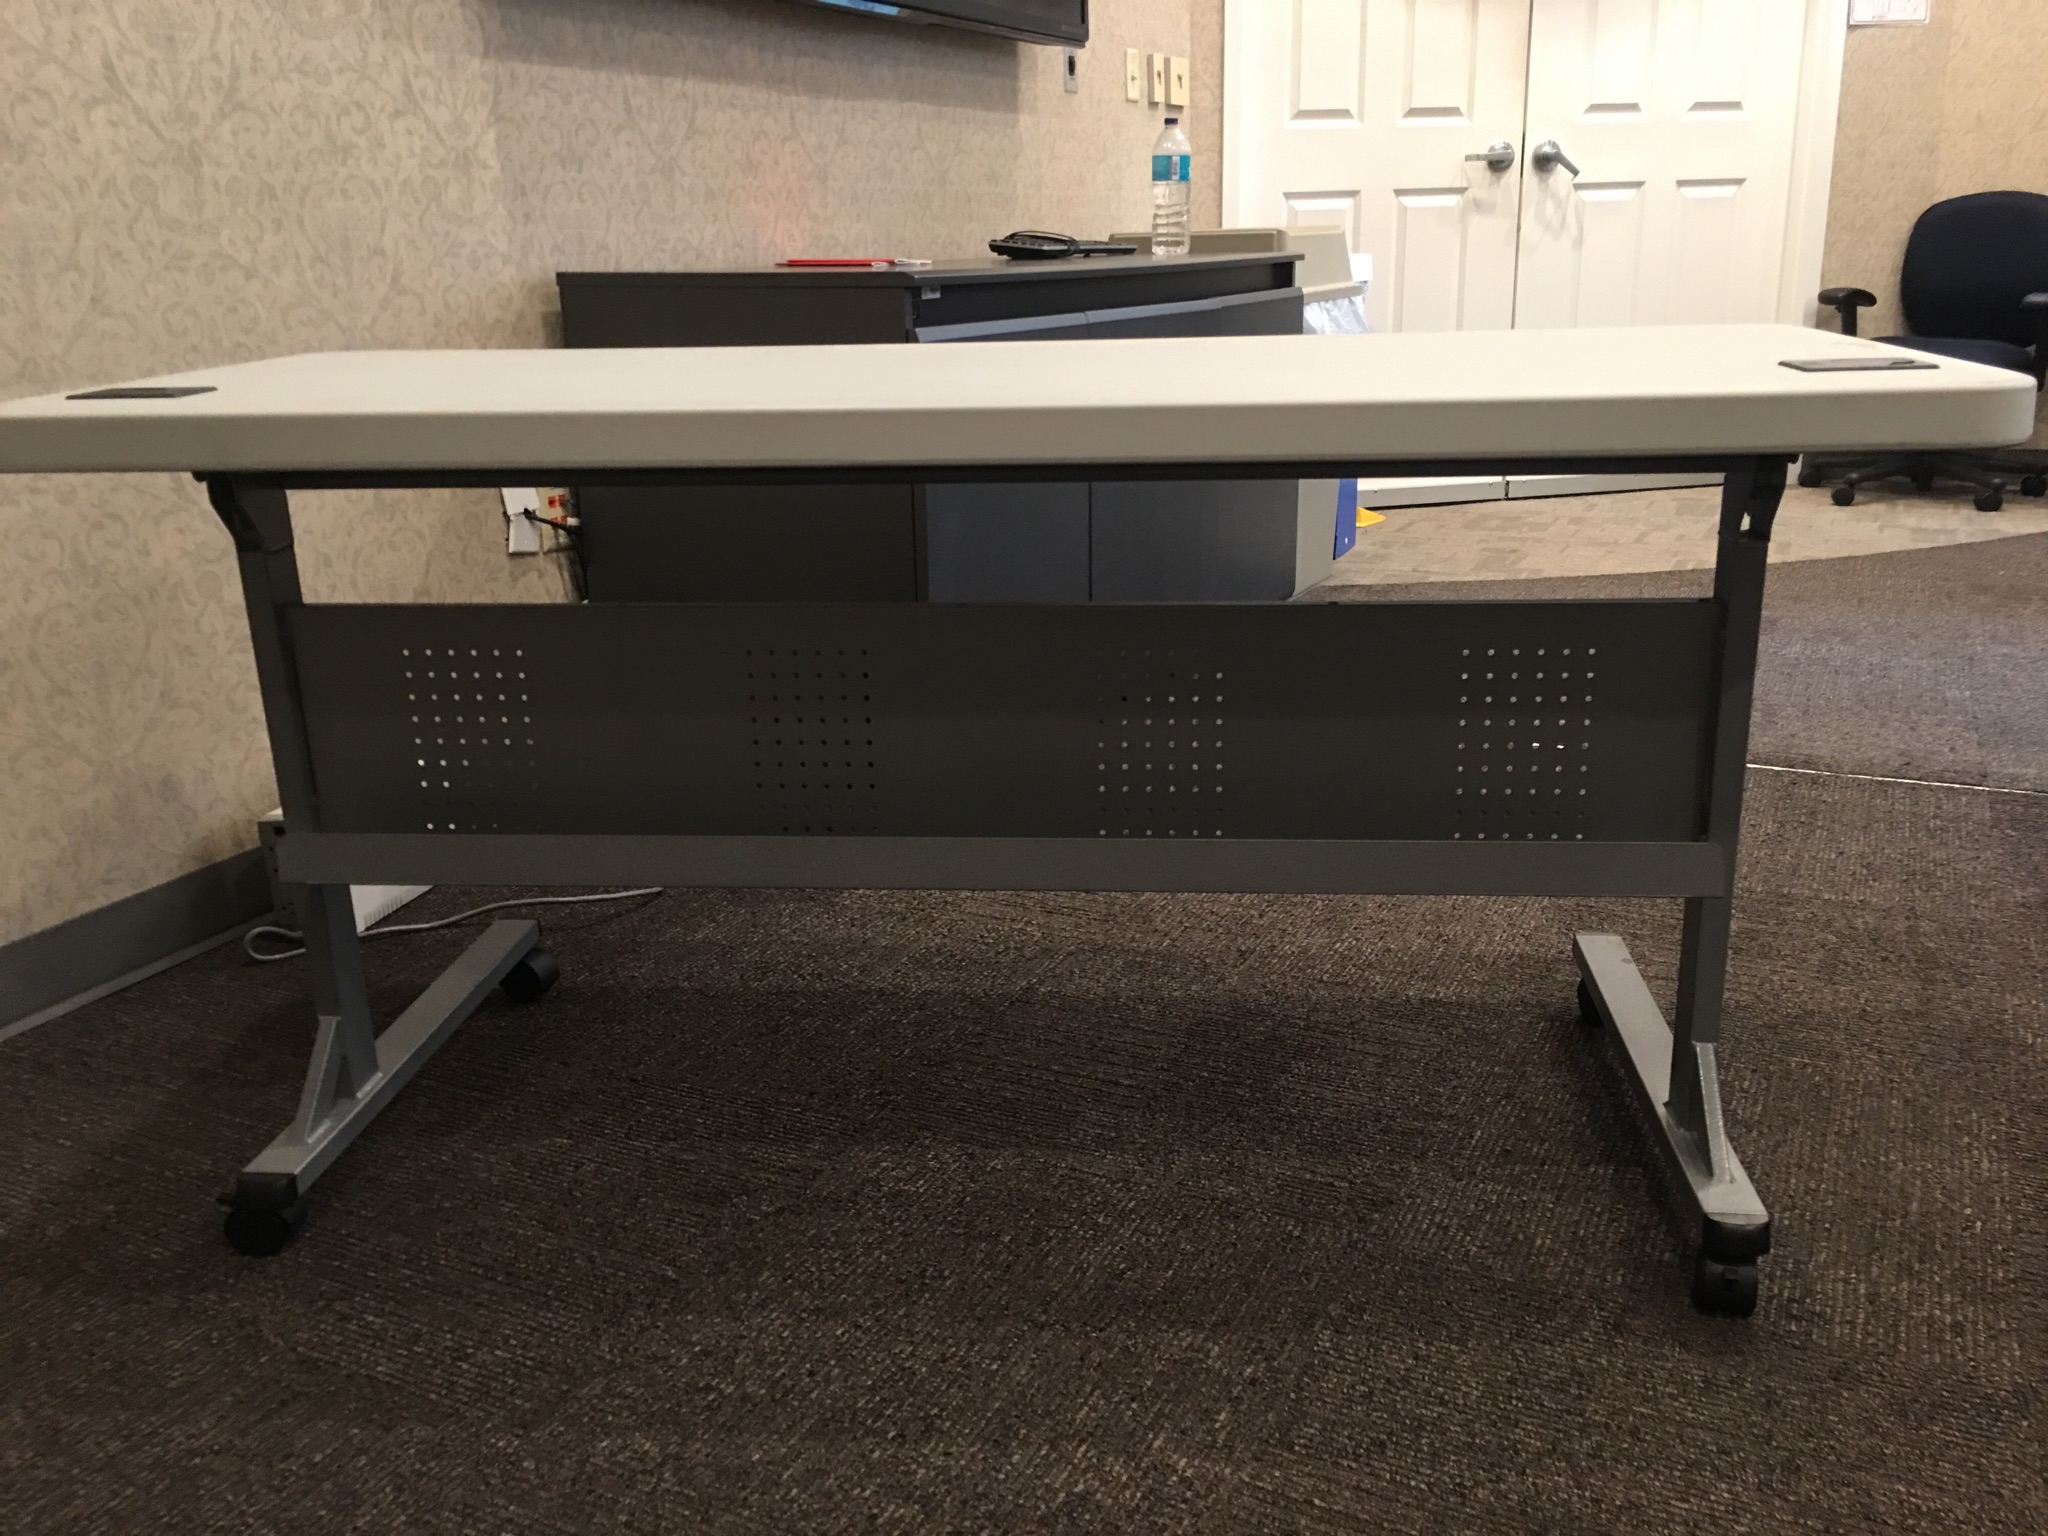 Used Flip Top Nesting Training Tables 24 deep x 60 wide